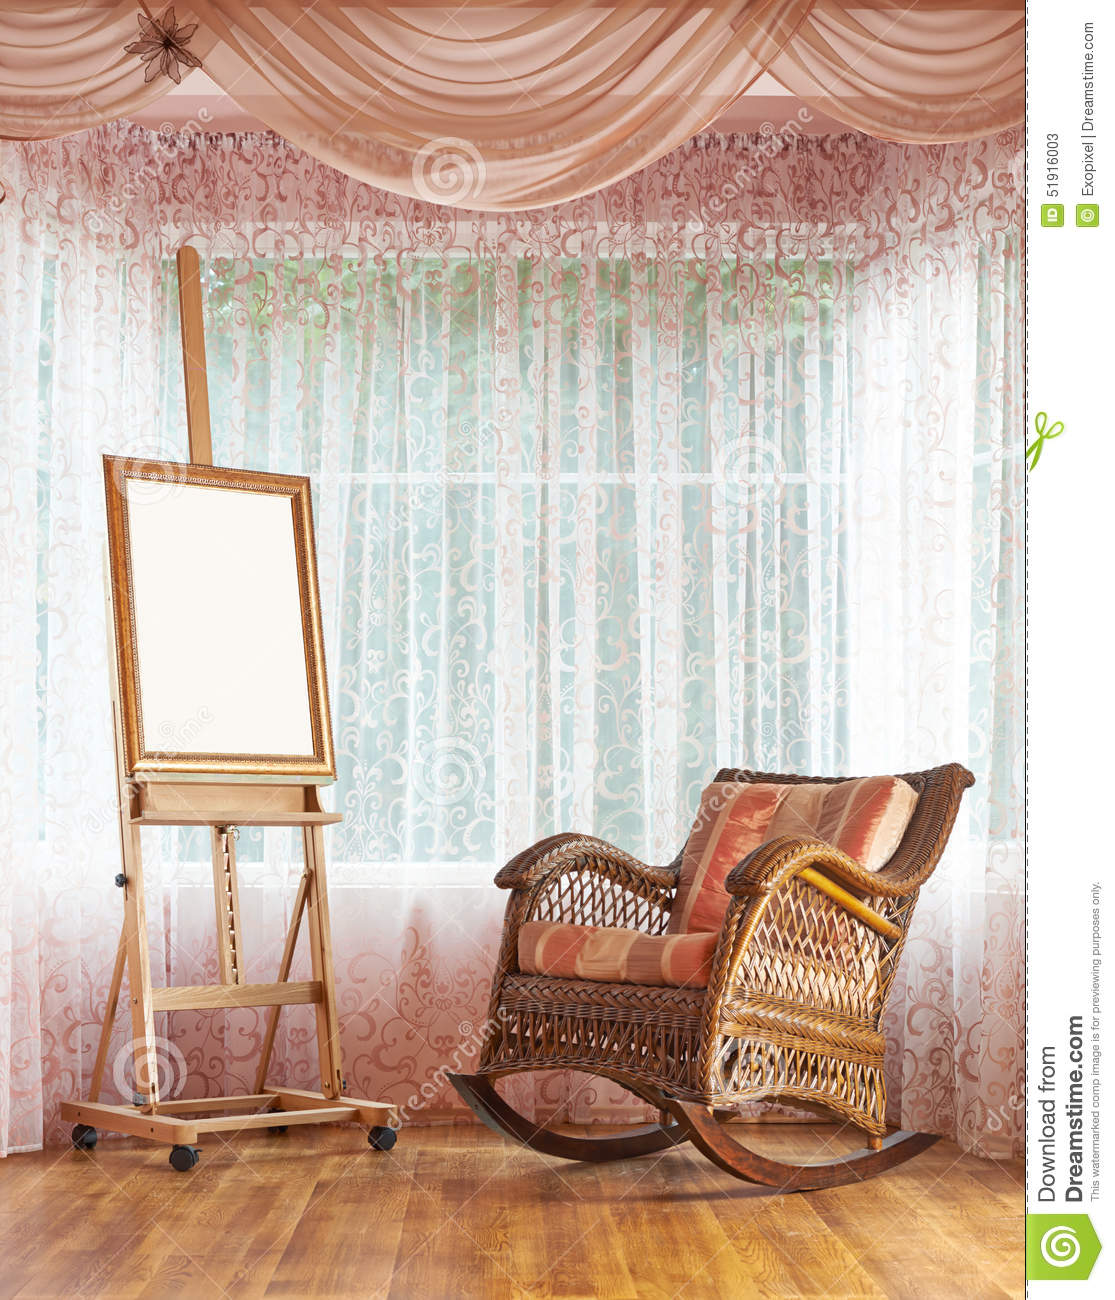 Wooden easel and wicker rocking chair composition stock for Chair next to window